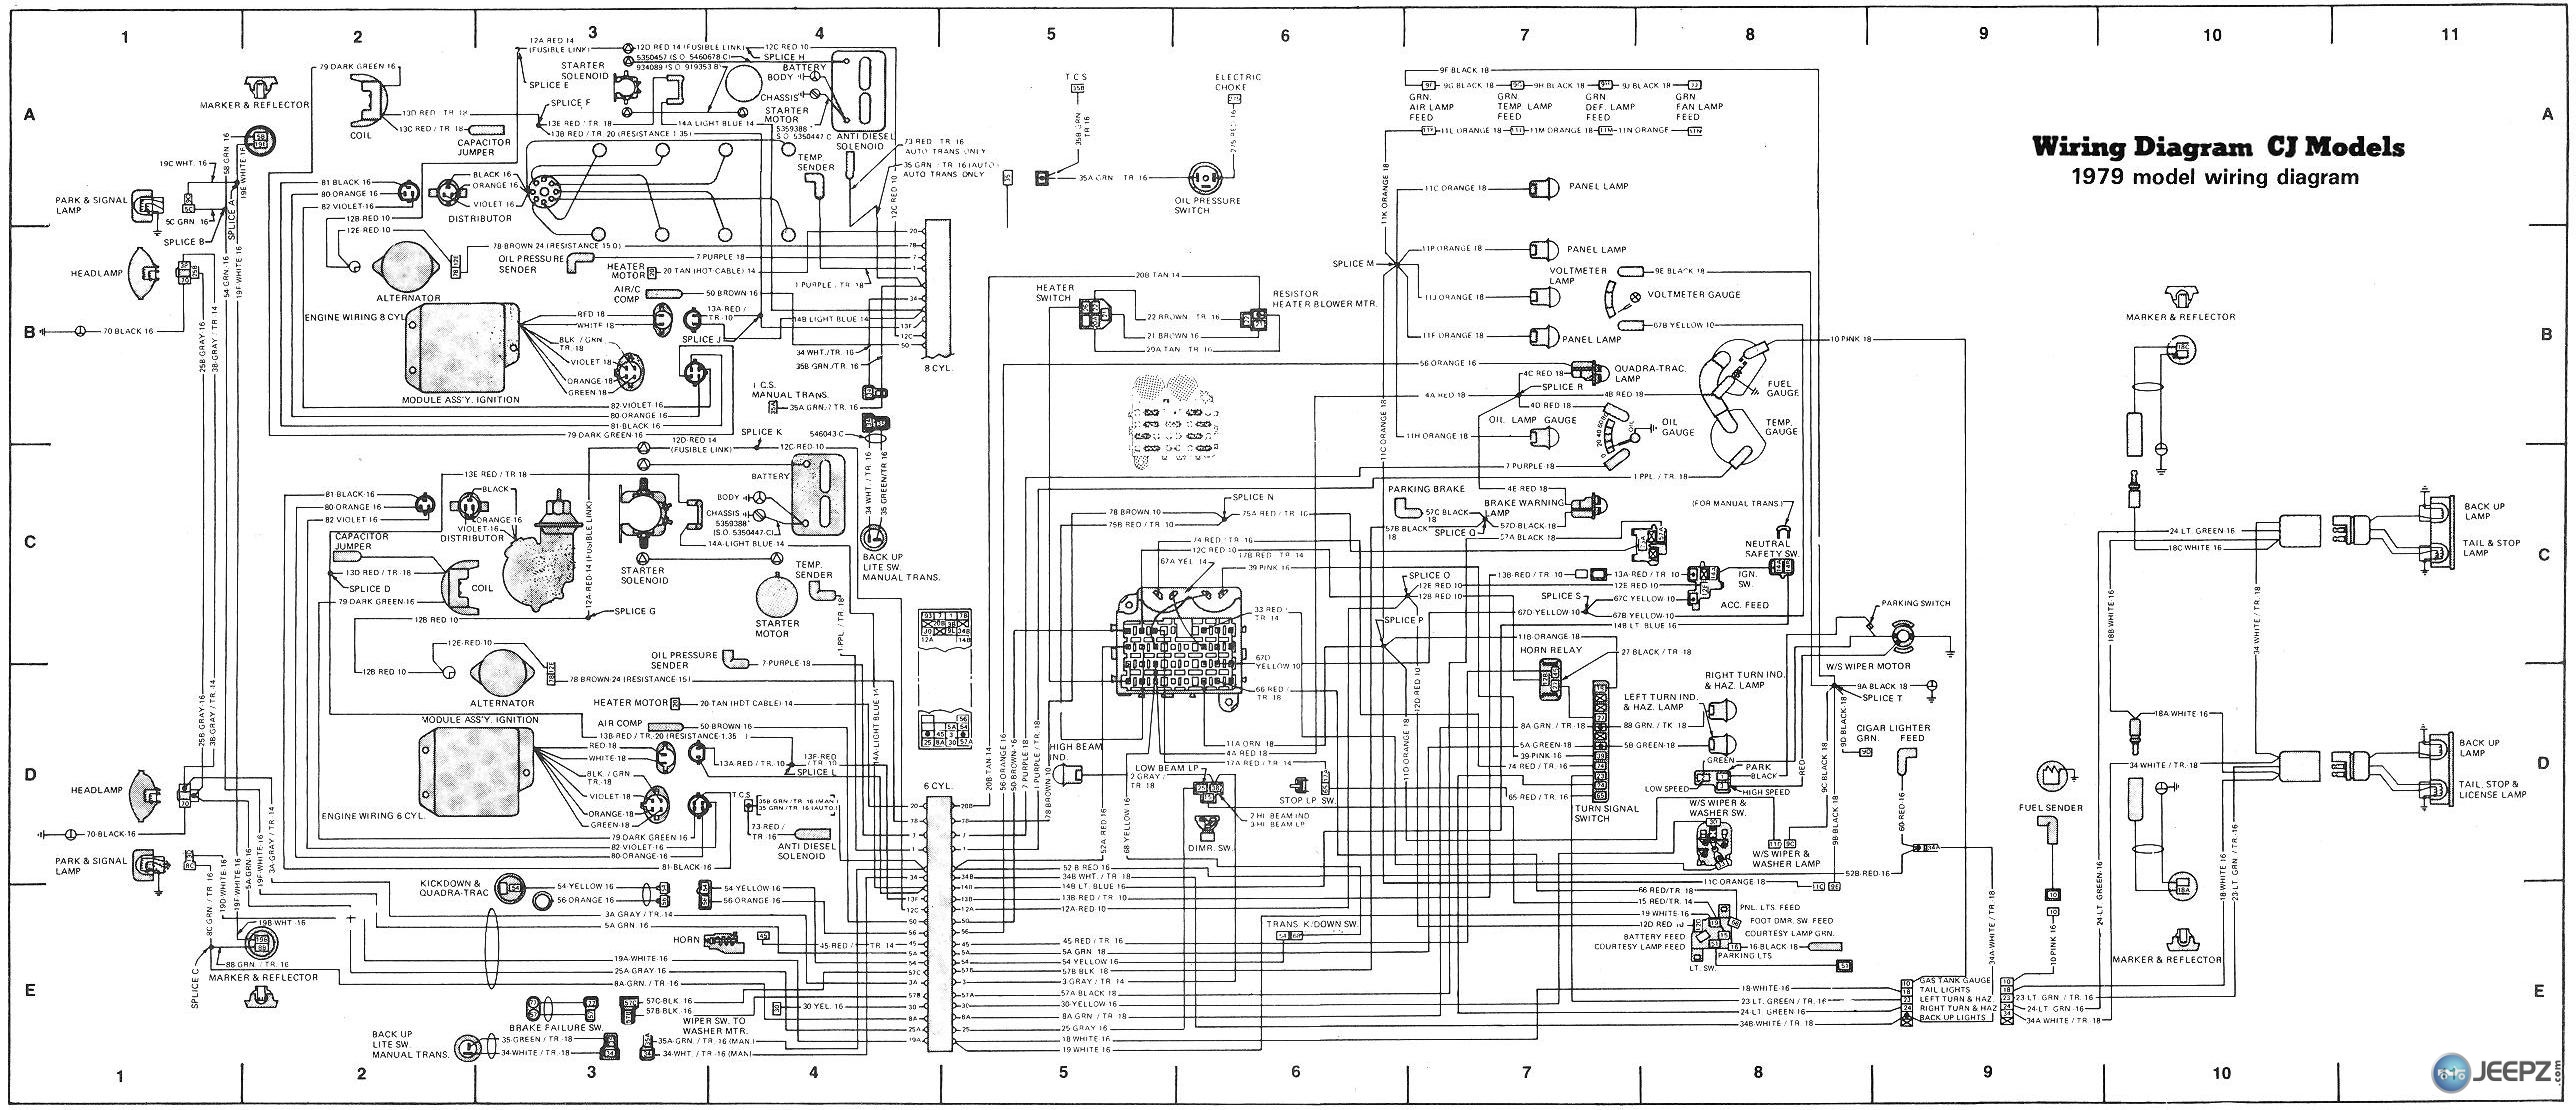 Renegade Wiring Diagram - Wiring Diagram on simplicity wiring-diagram, audi wiring-diagram, murray wiring-diagram, 1980 moto-ski wiring-diagram, big dog wiring-diagram, kawasaki wiring-diagram, 2007 outlander wiring-diagram, suzuki wiring-diagram, skandic wiring-diagram, mercedes-benz wiring-diagram,